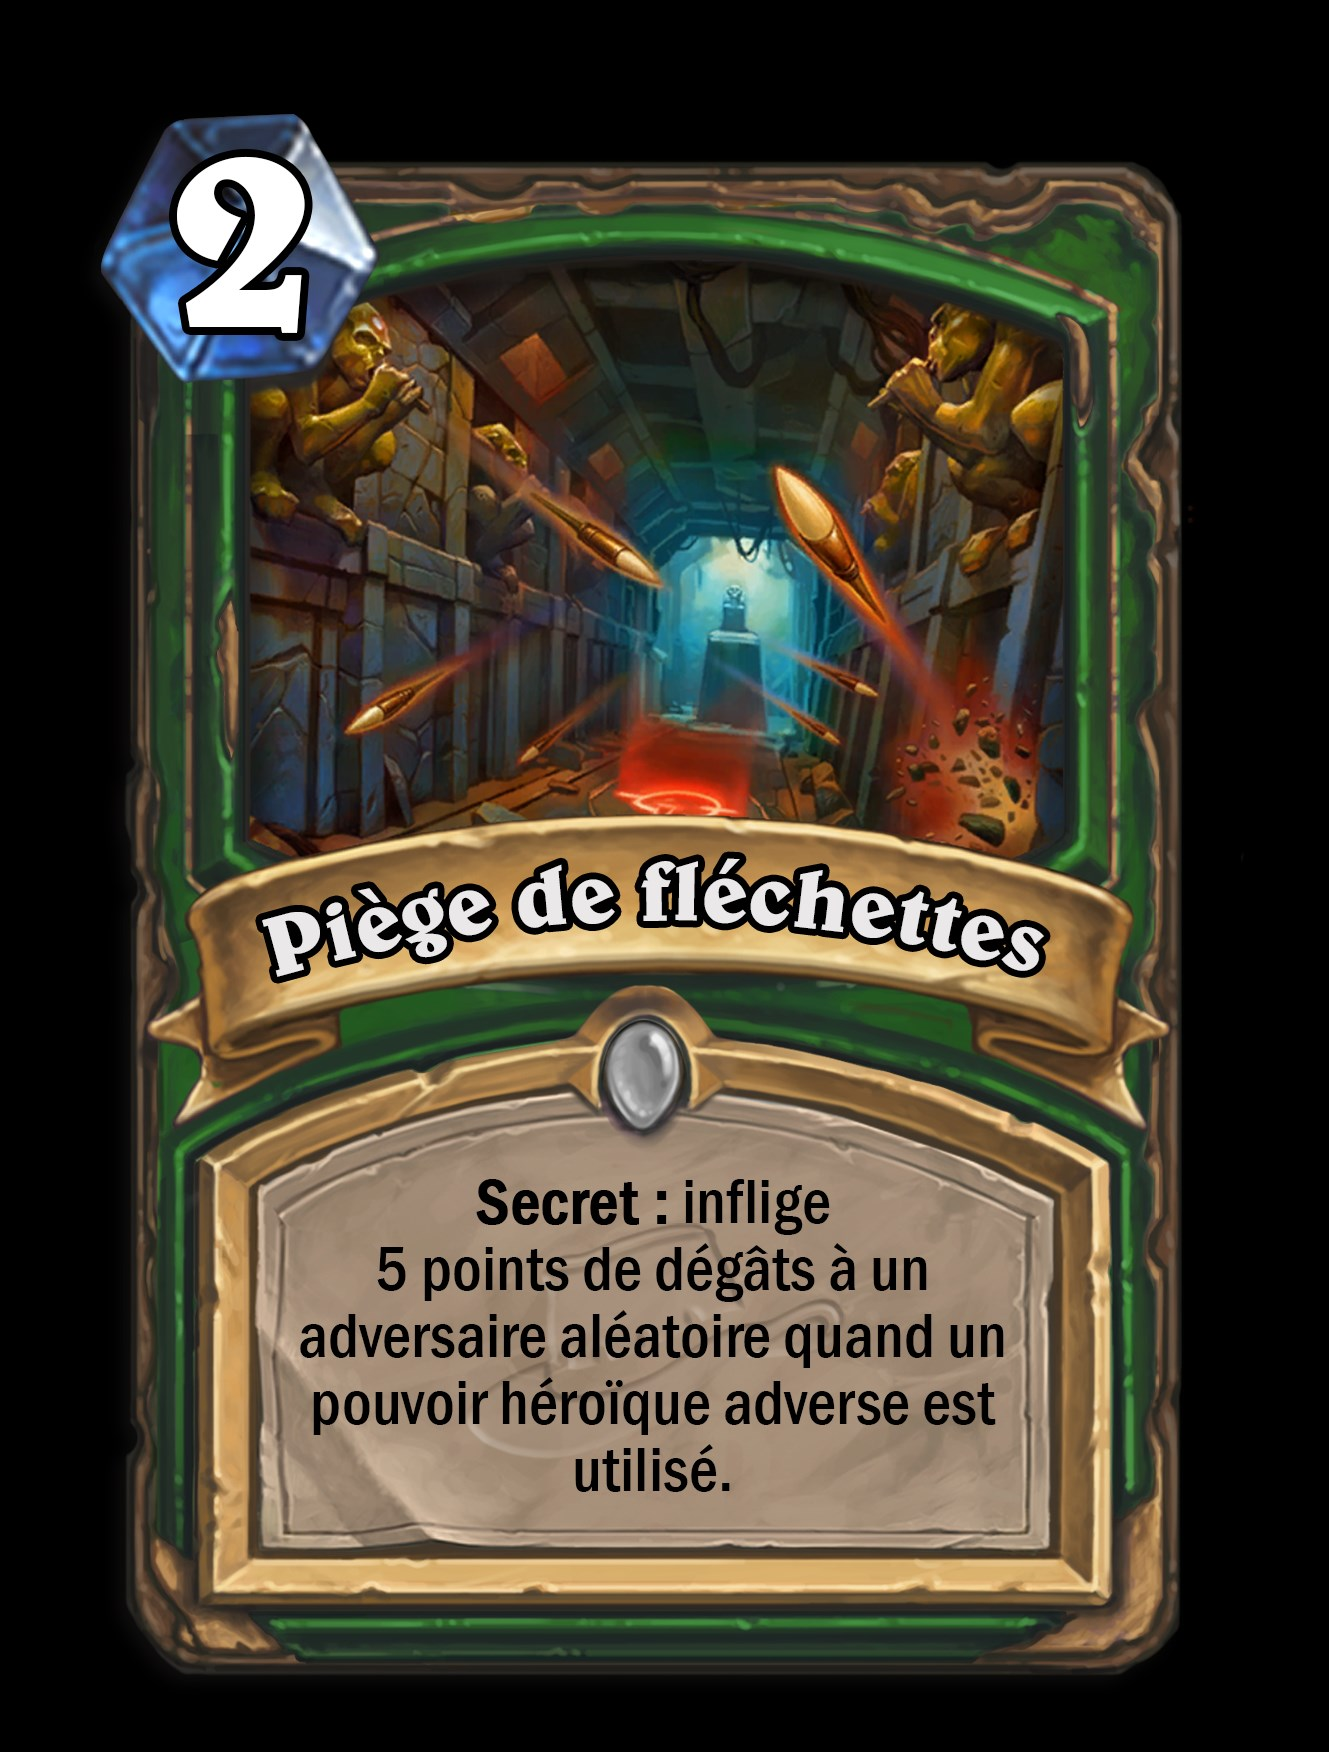 Hearthstone-LaLiguedesExplorateurs Android Visuel 011